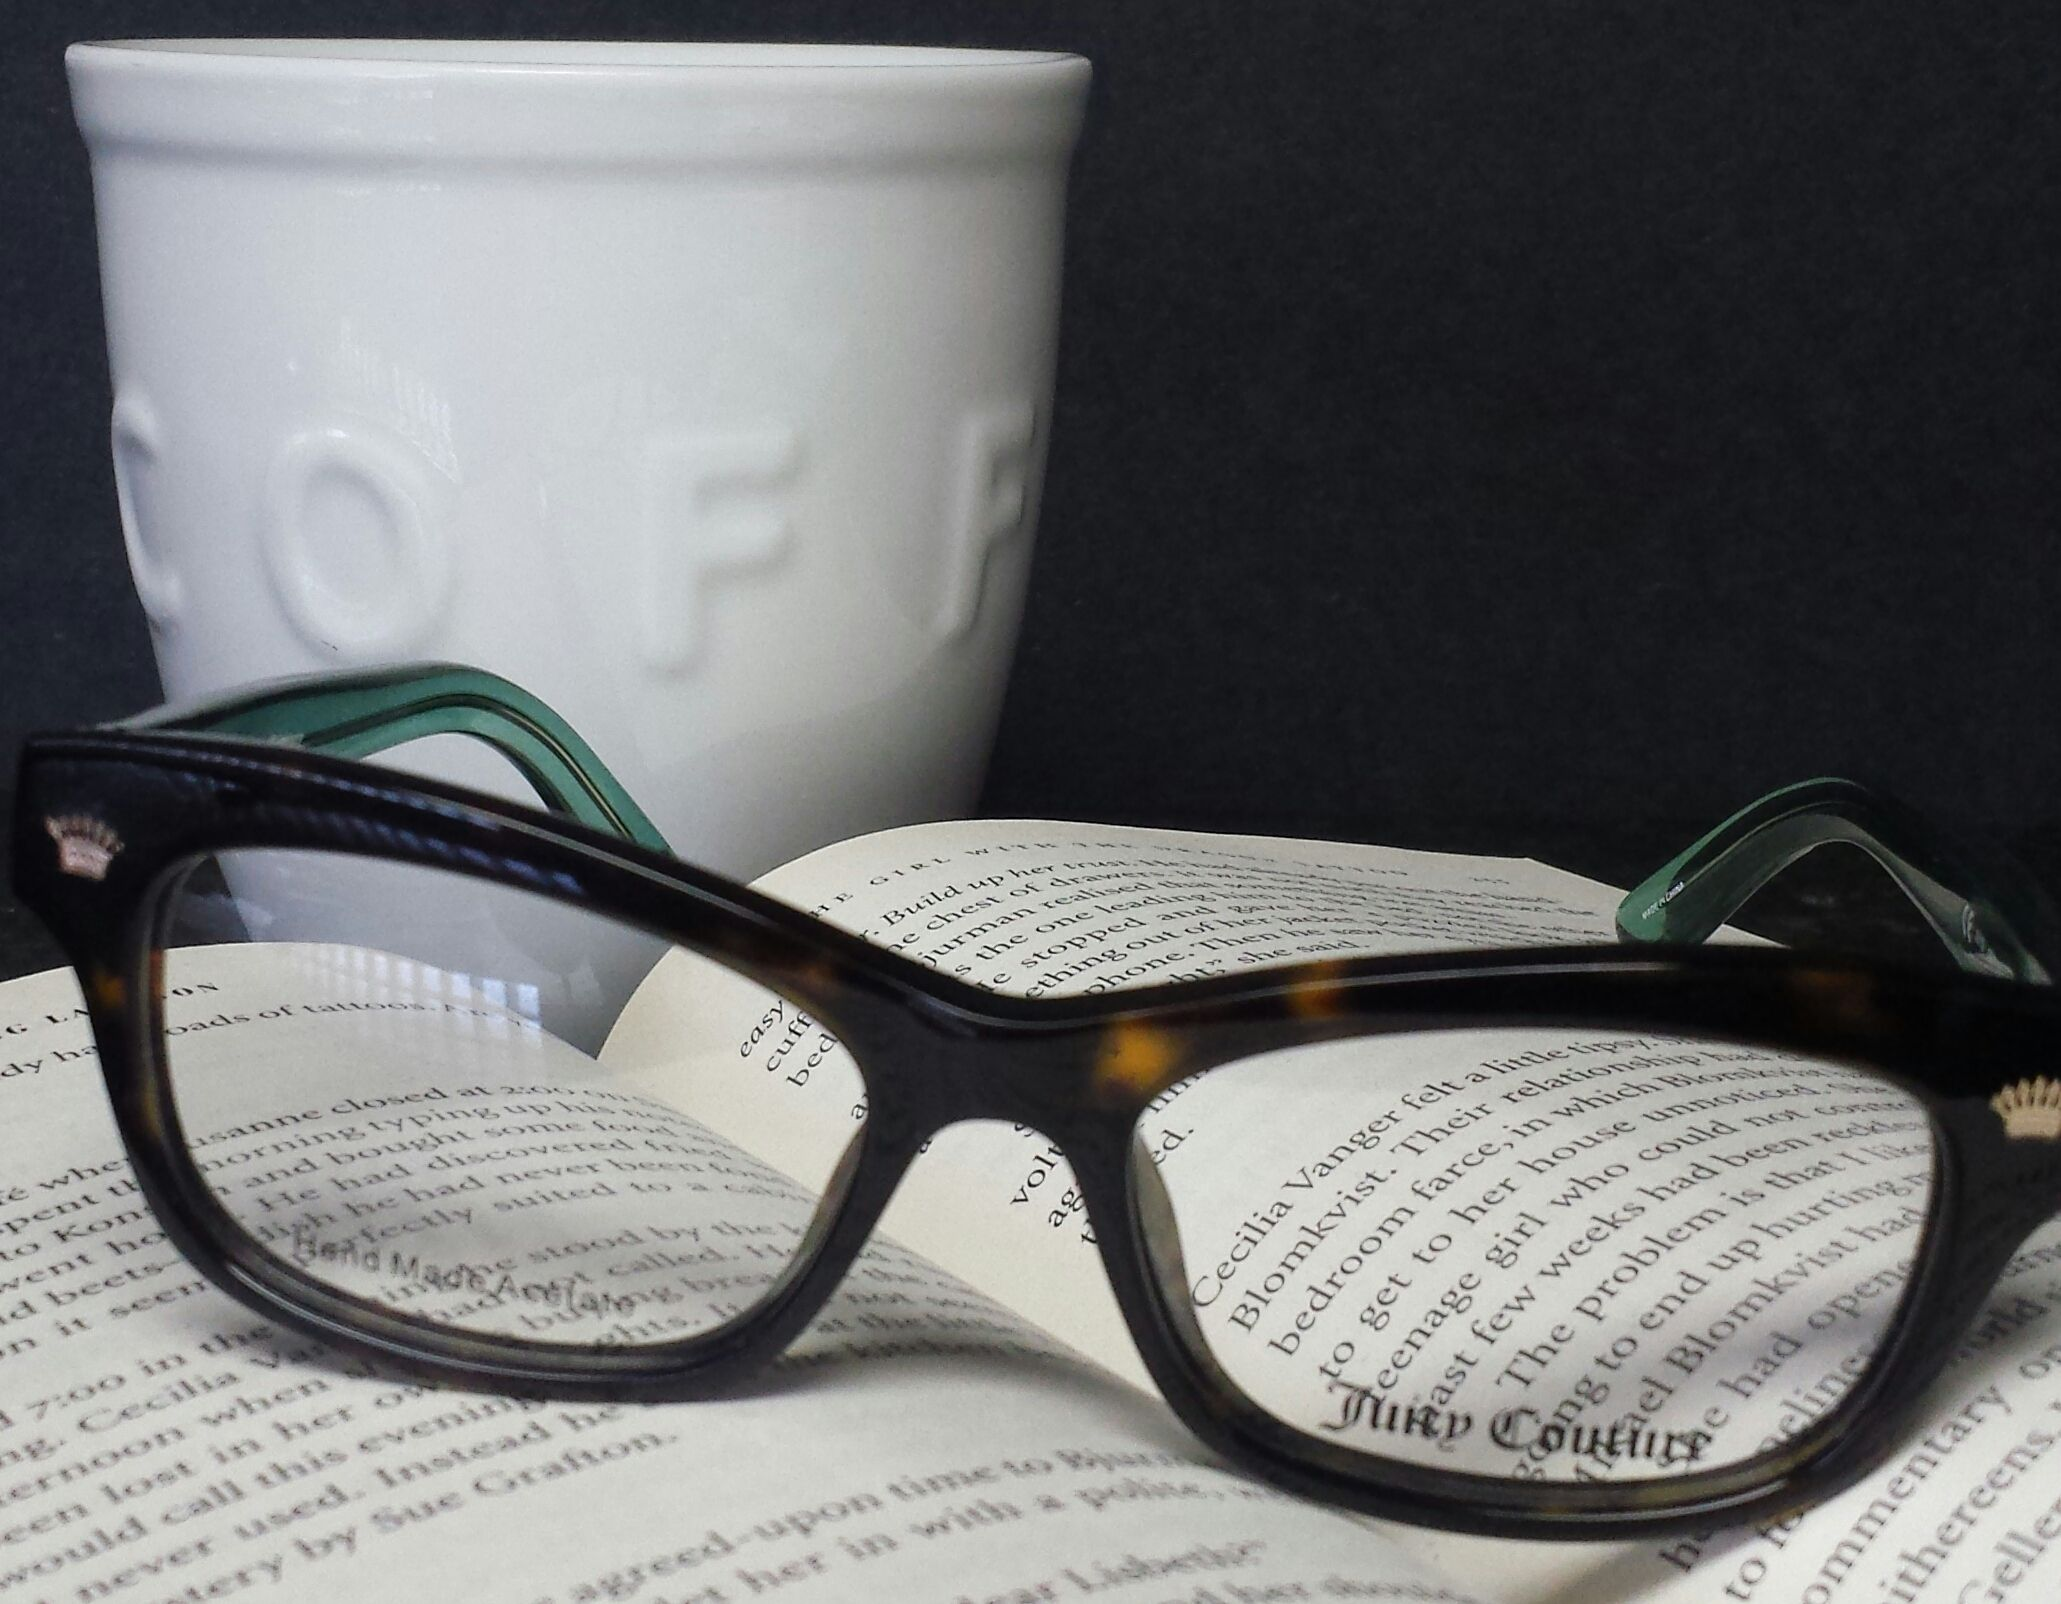 Reading glasses, coffee and a good book are a great way to start the weekend. Come in for your reading glasses today.